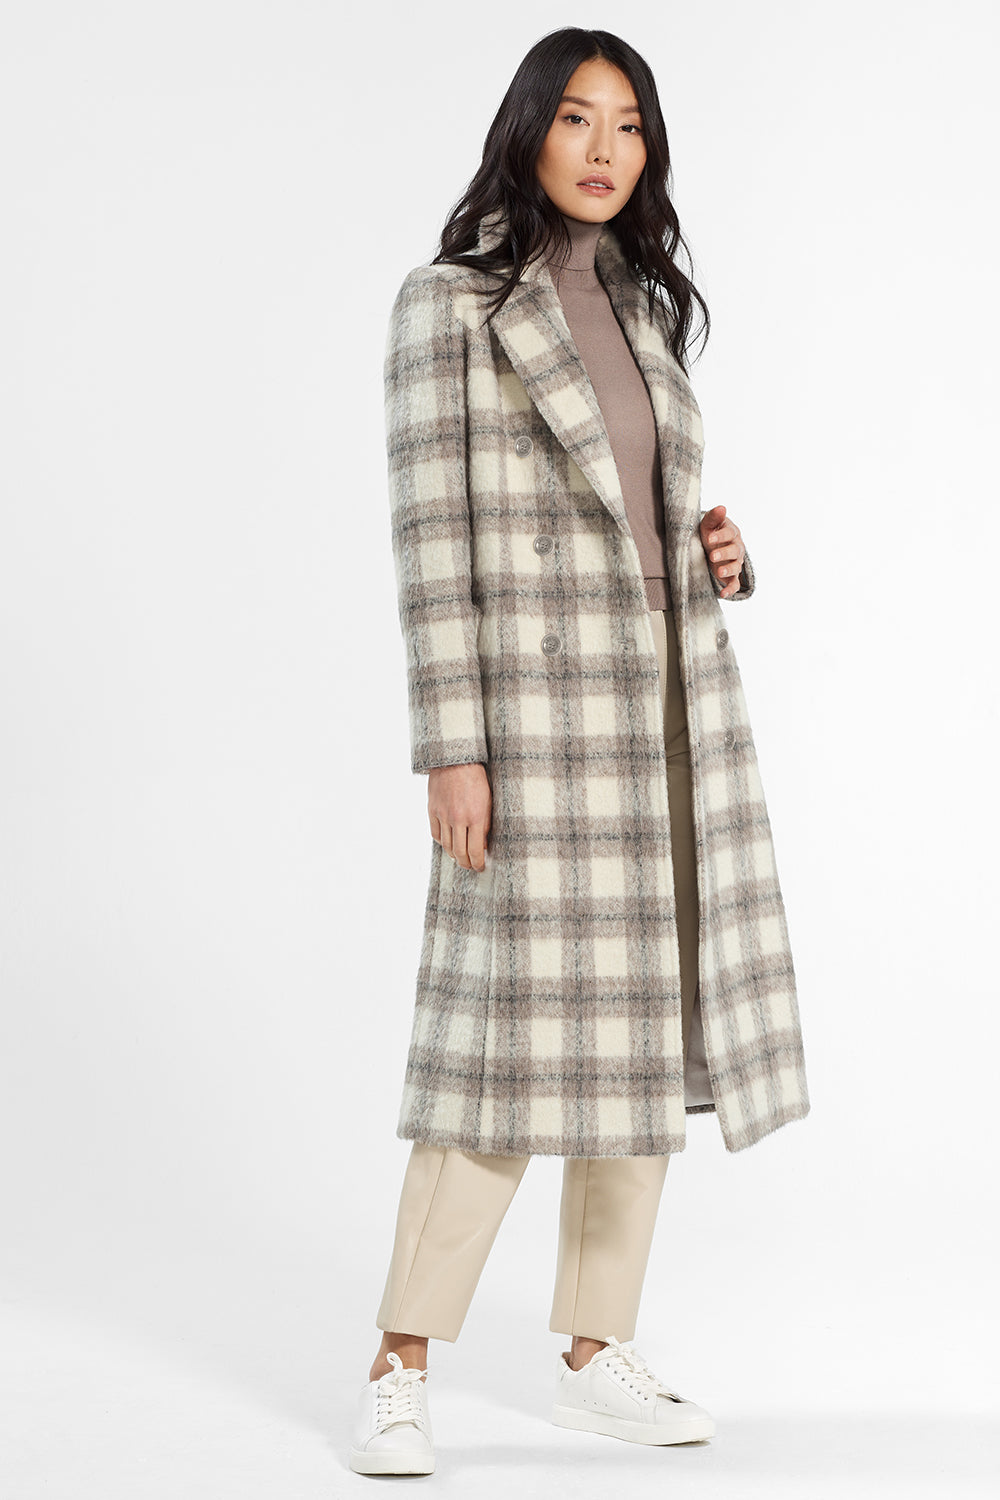 Sentaler Plaid Long Double Breasted Coat featured in Suri Alpaca and available in Ecru Plaid. Seen open..